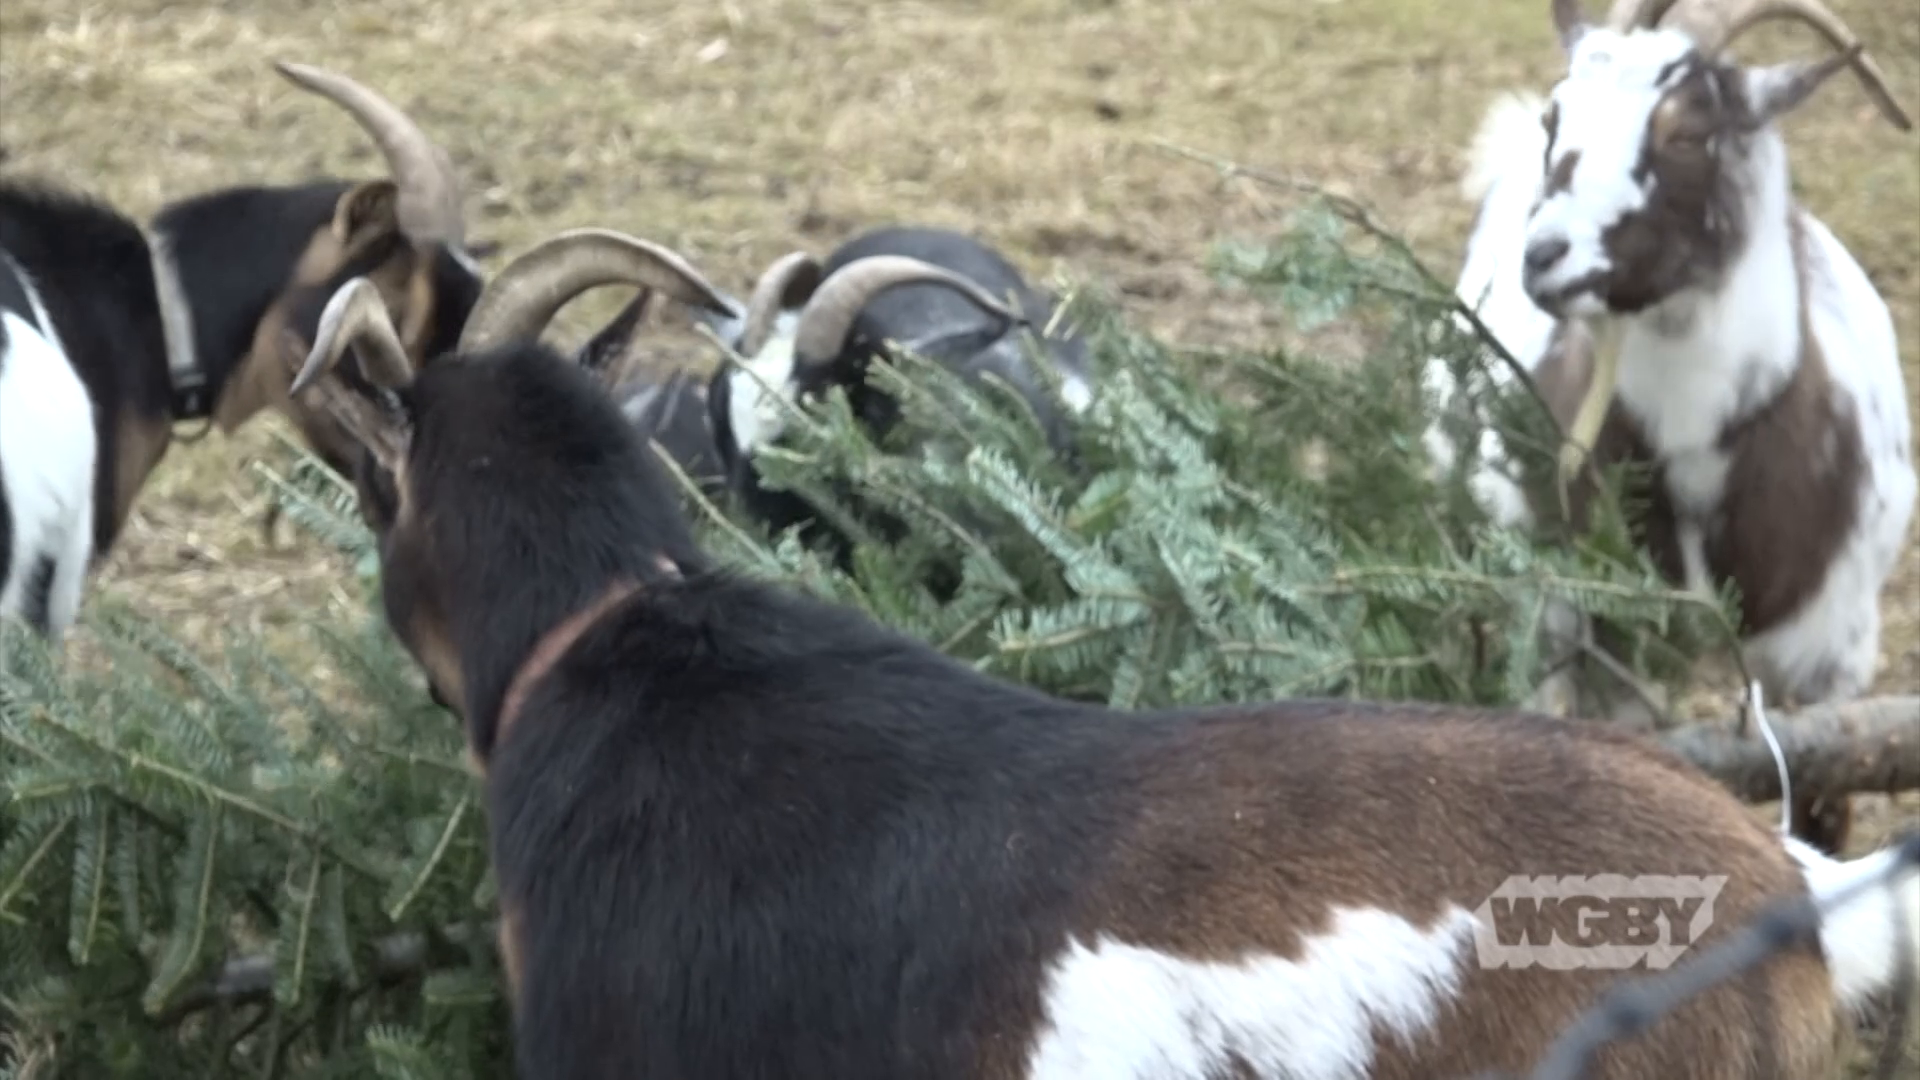 Looking for an eco-friendly way to get rid of your Christmas tree? Hokaheh Farm in Housatonic, MA recycles Christmas trees into feed for the farm's goats.